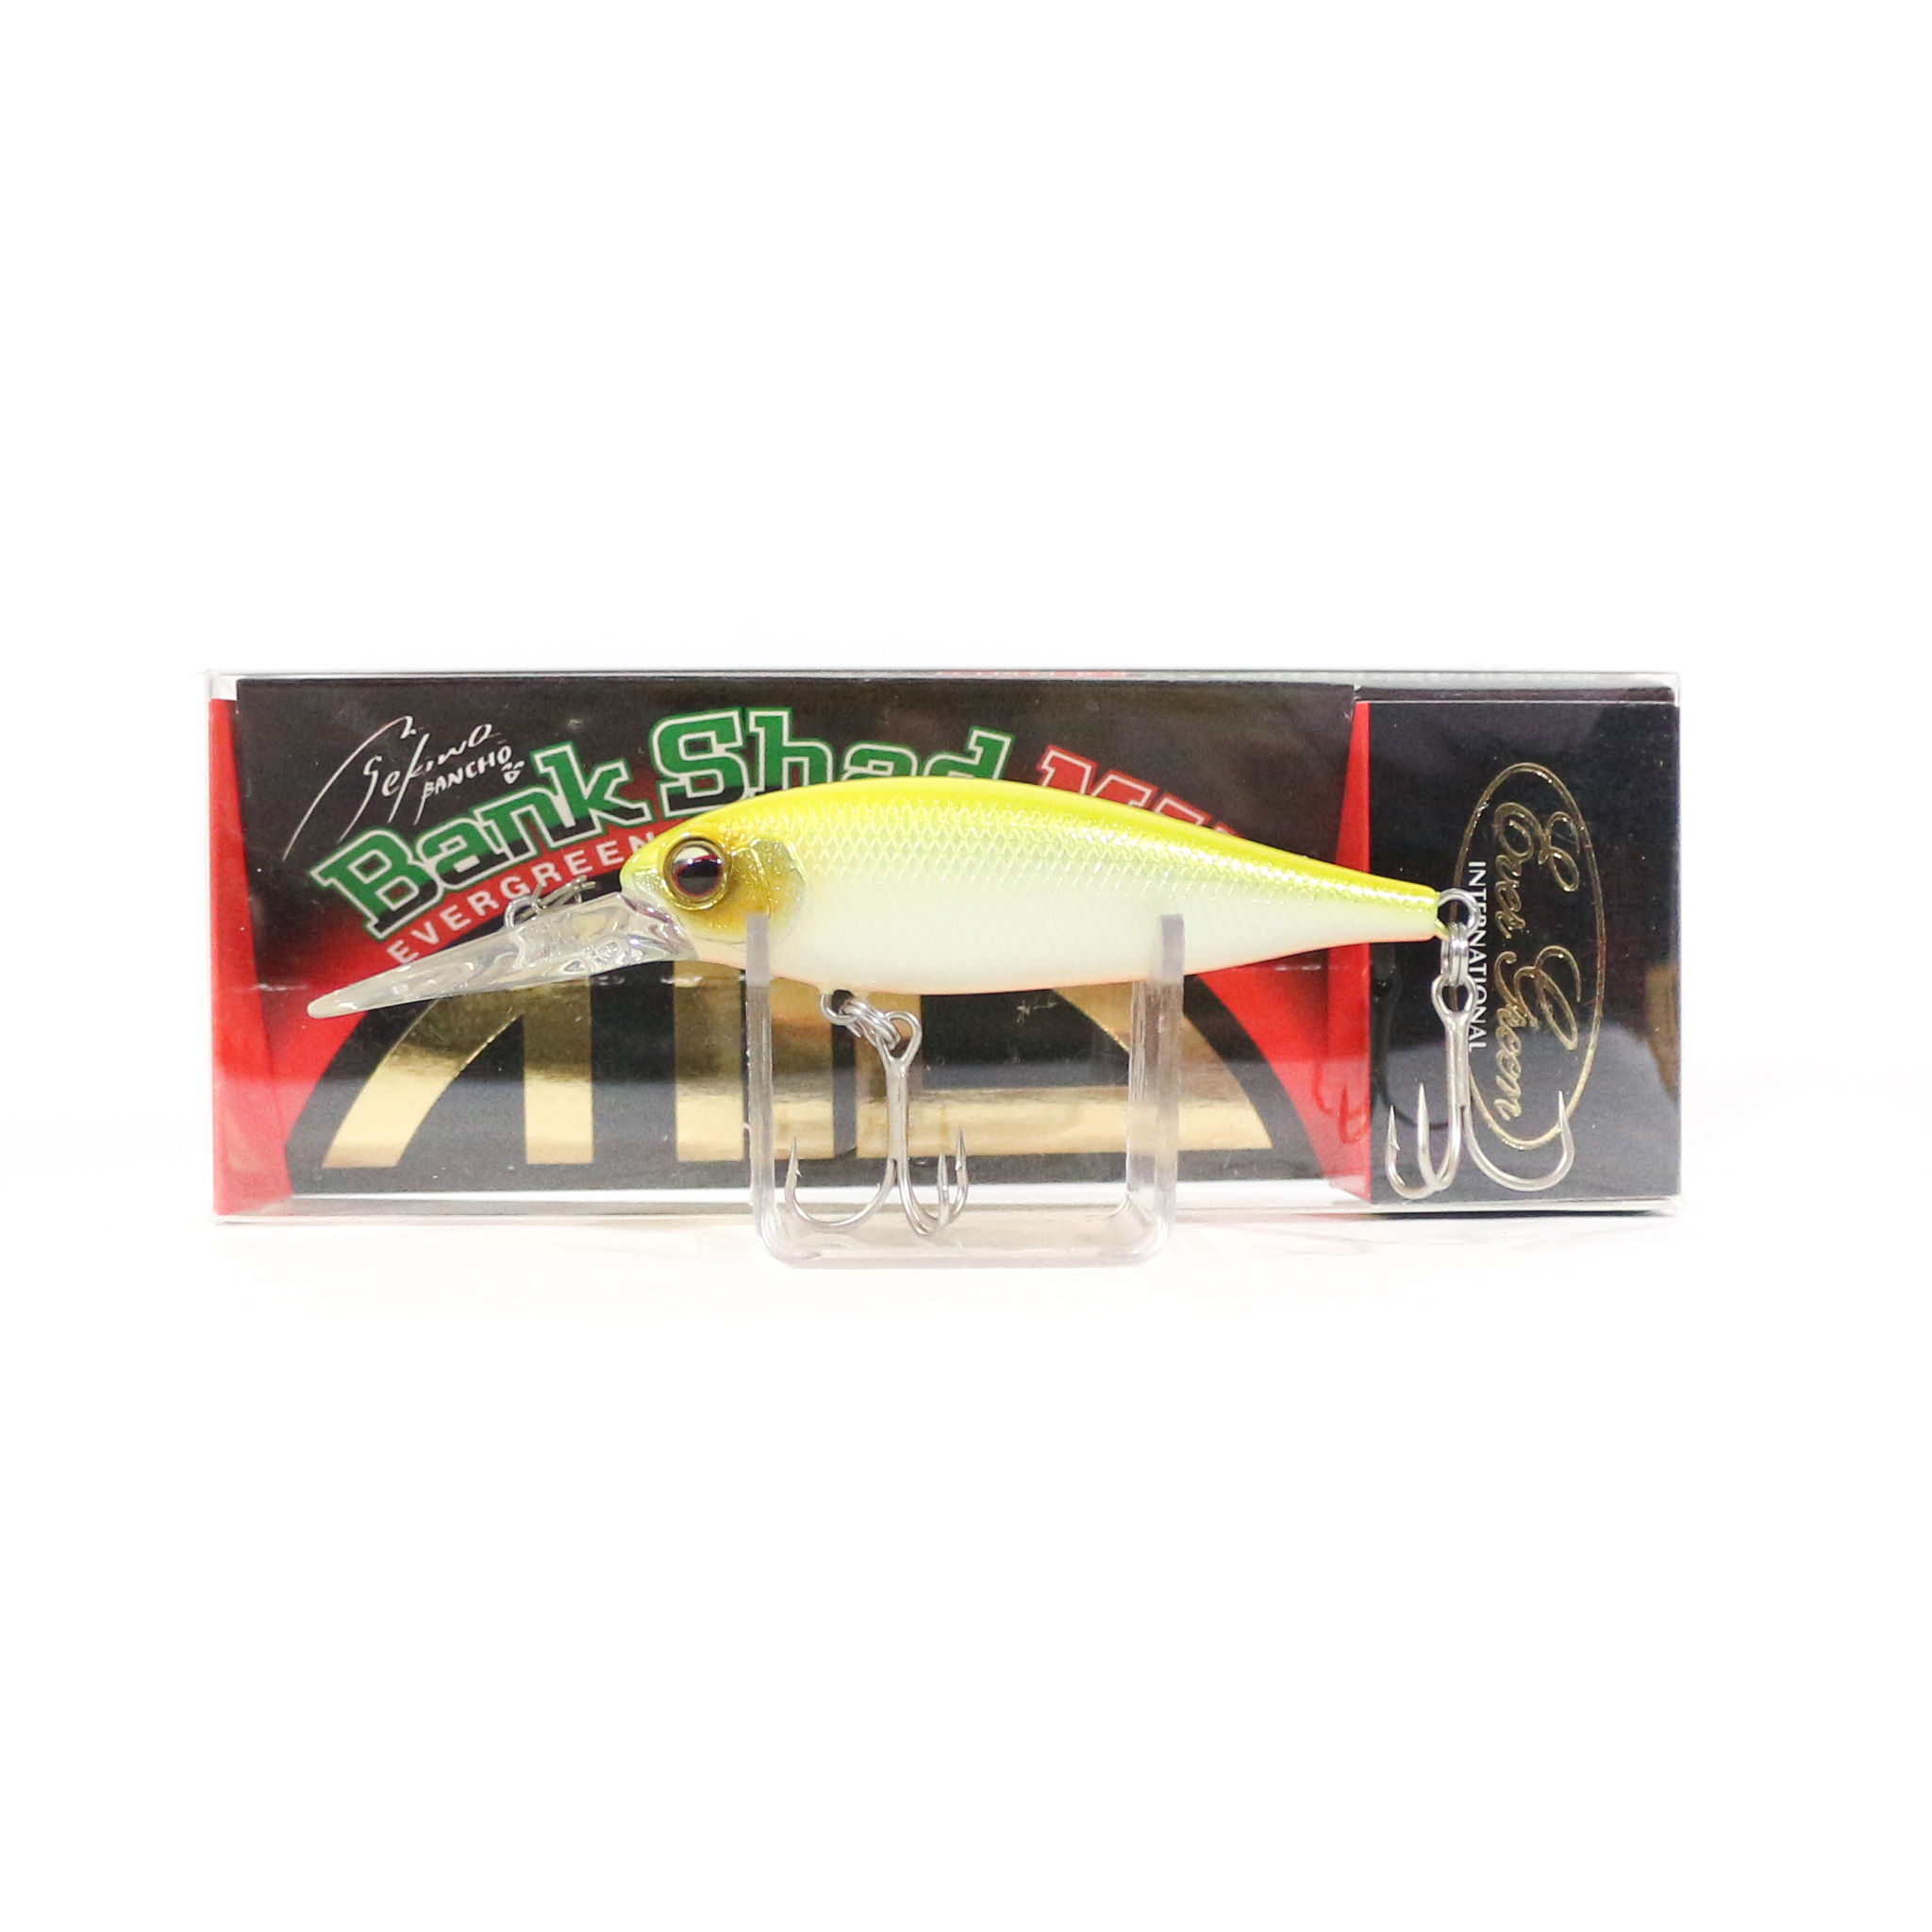 Evergreen Bank Shad Mid Range Floating Lure 602 (8735)